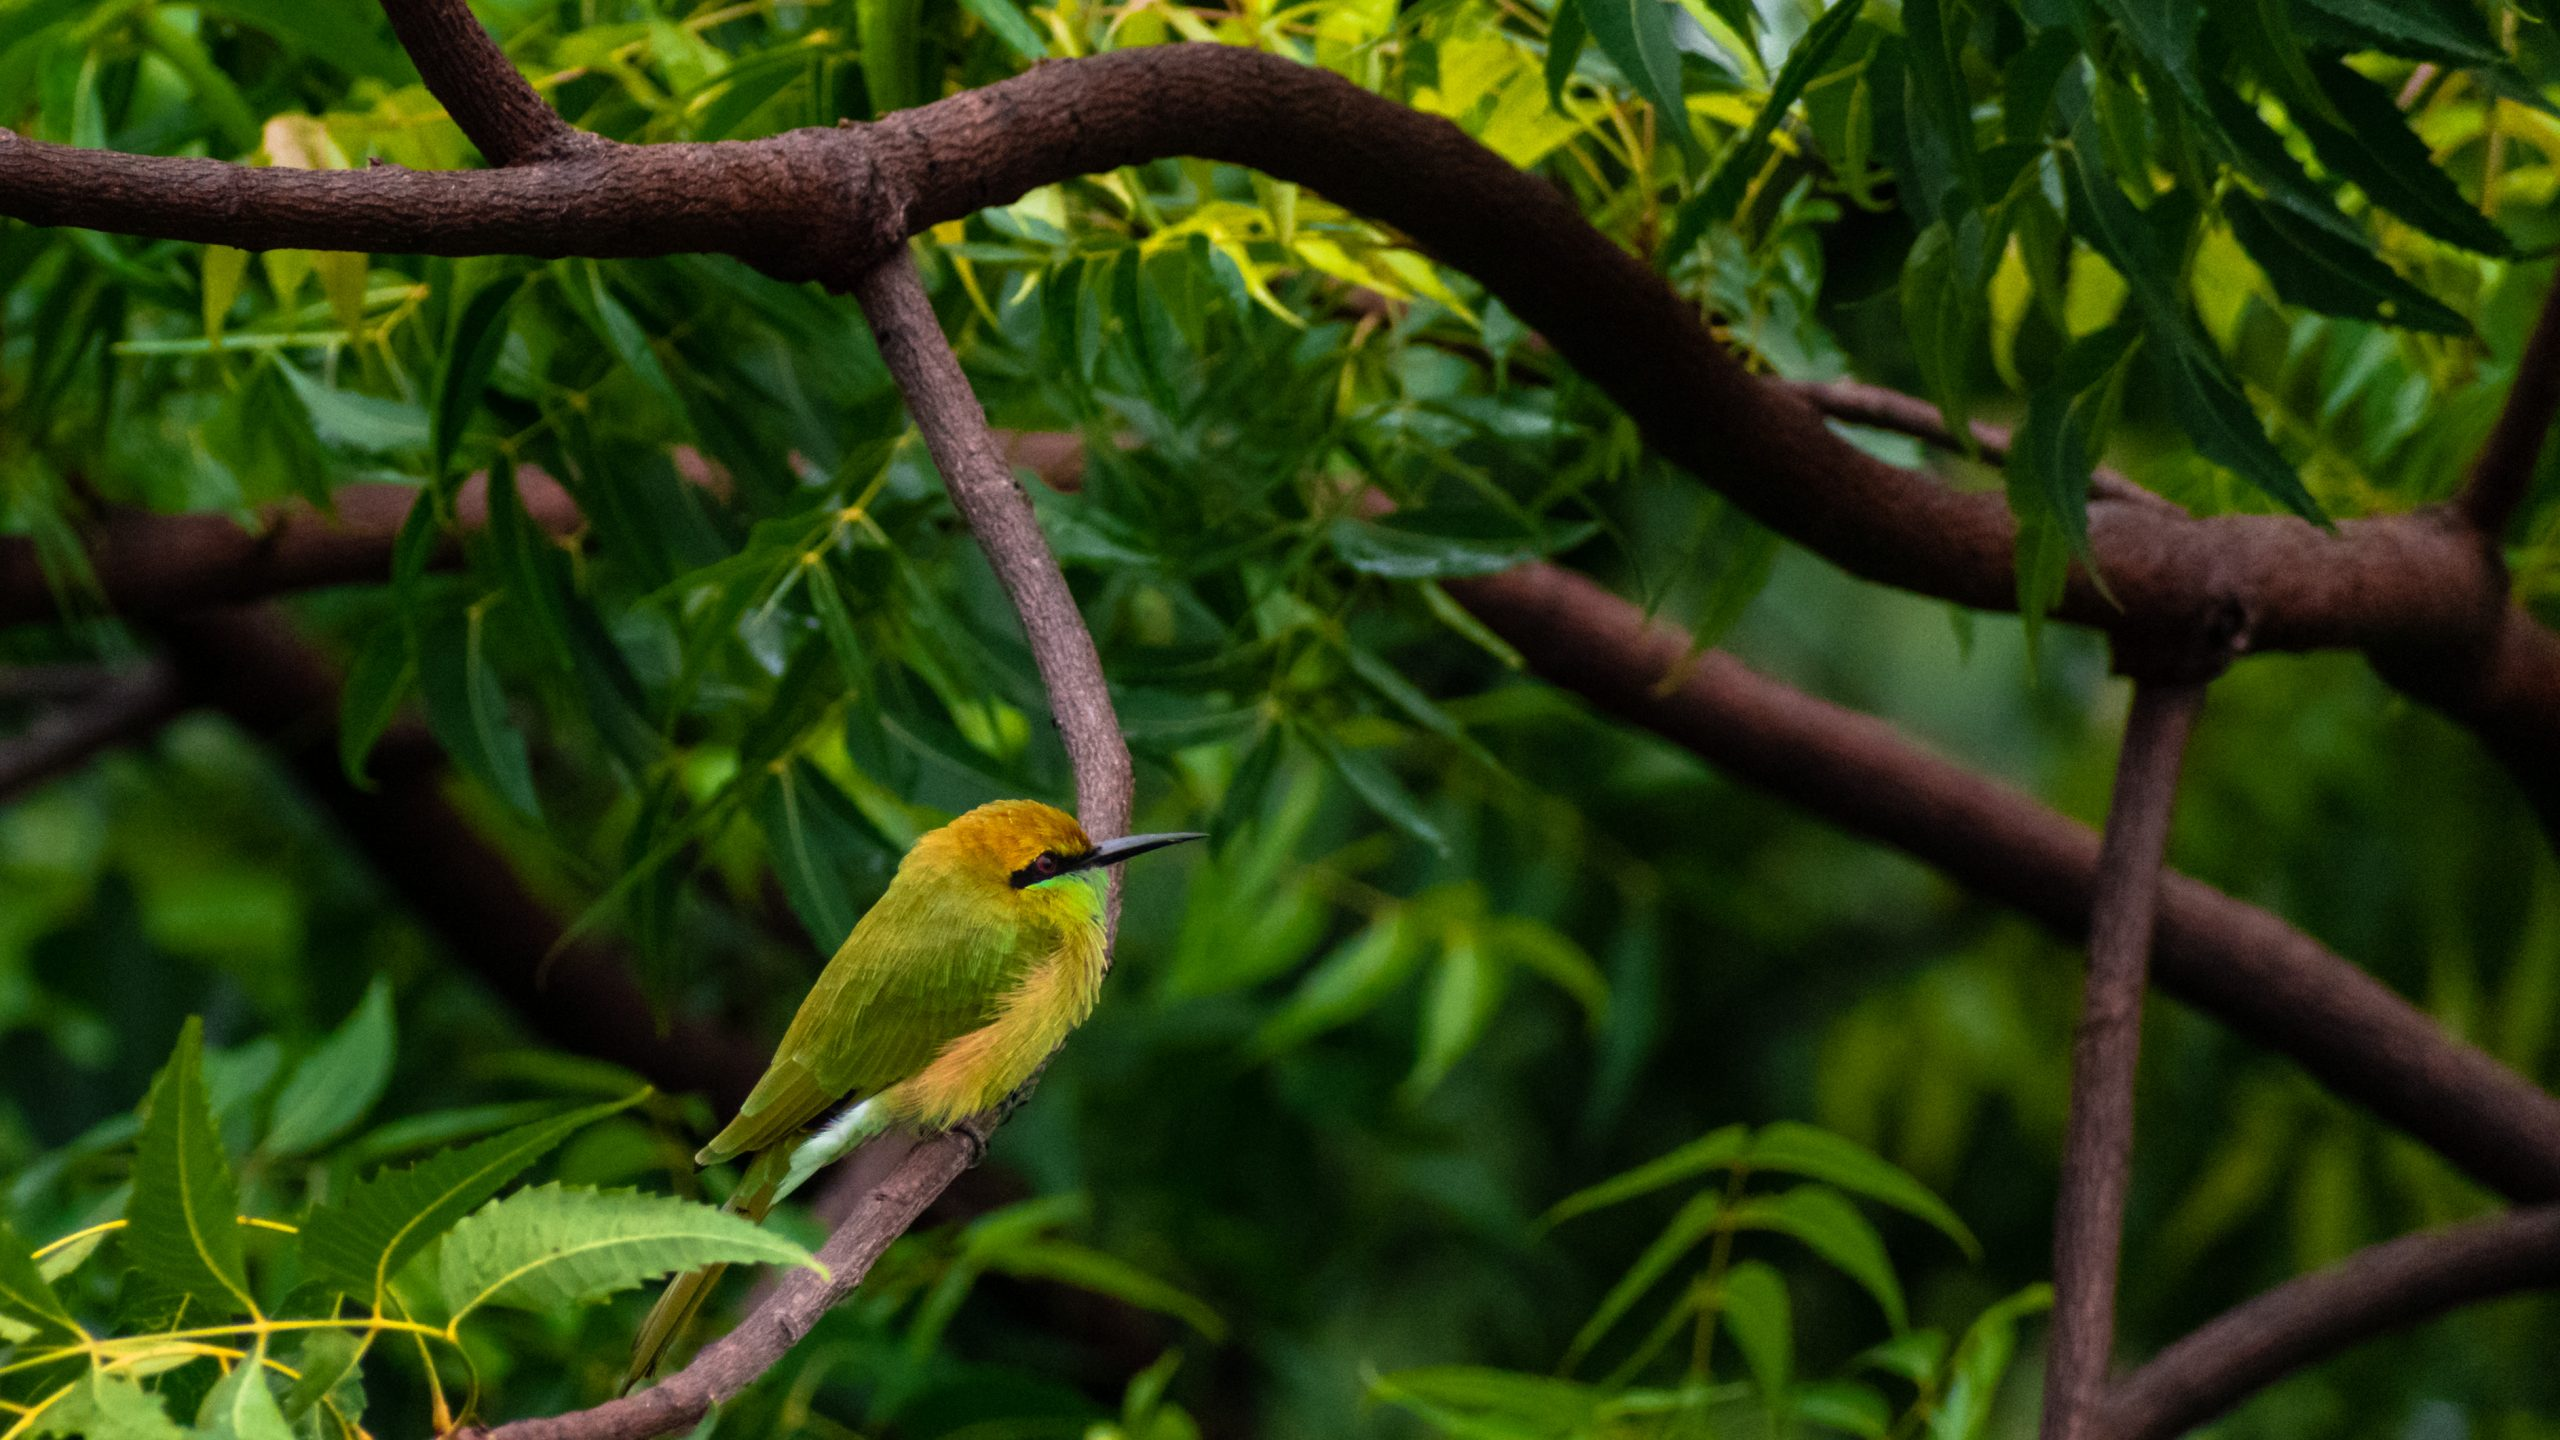 Bee-eater perched on a tree